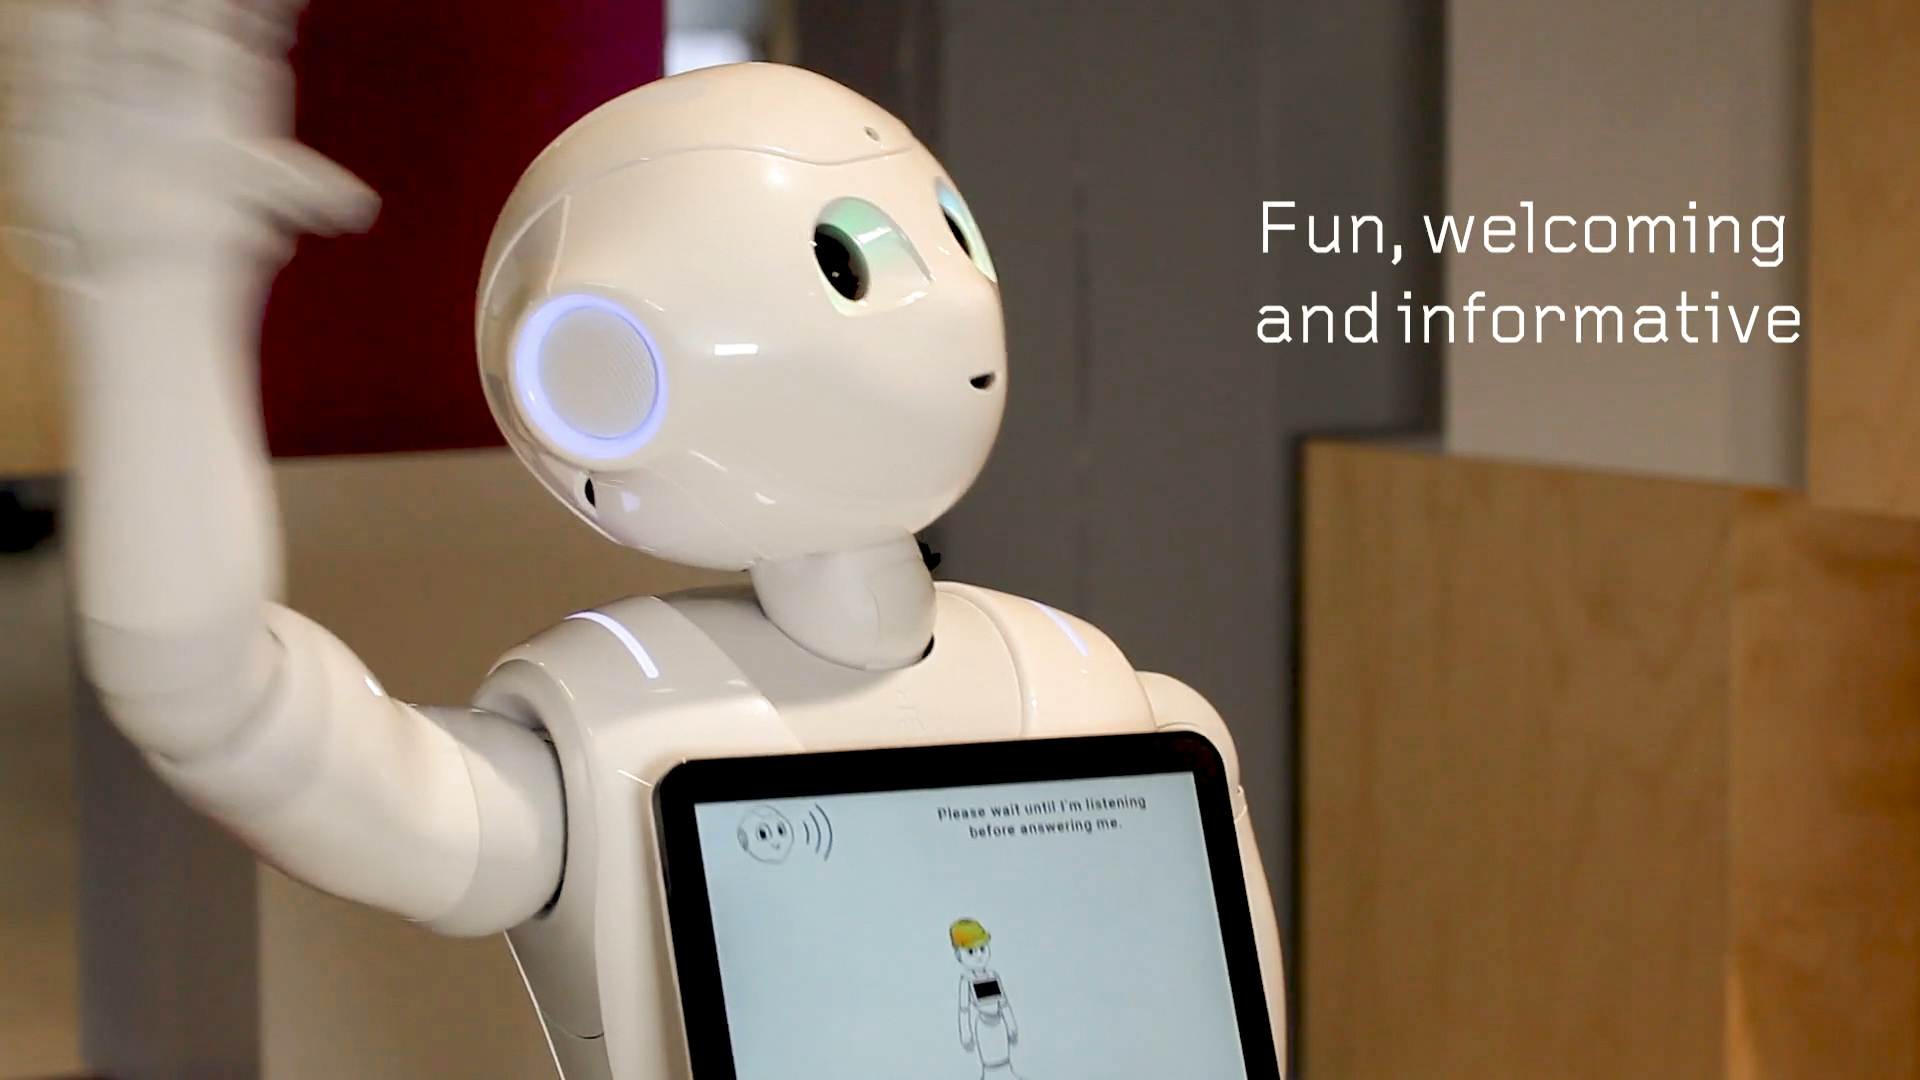 Softbank Robotics Pepper